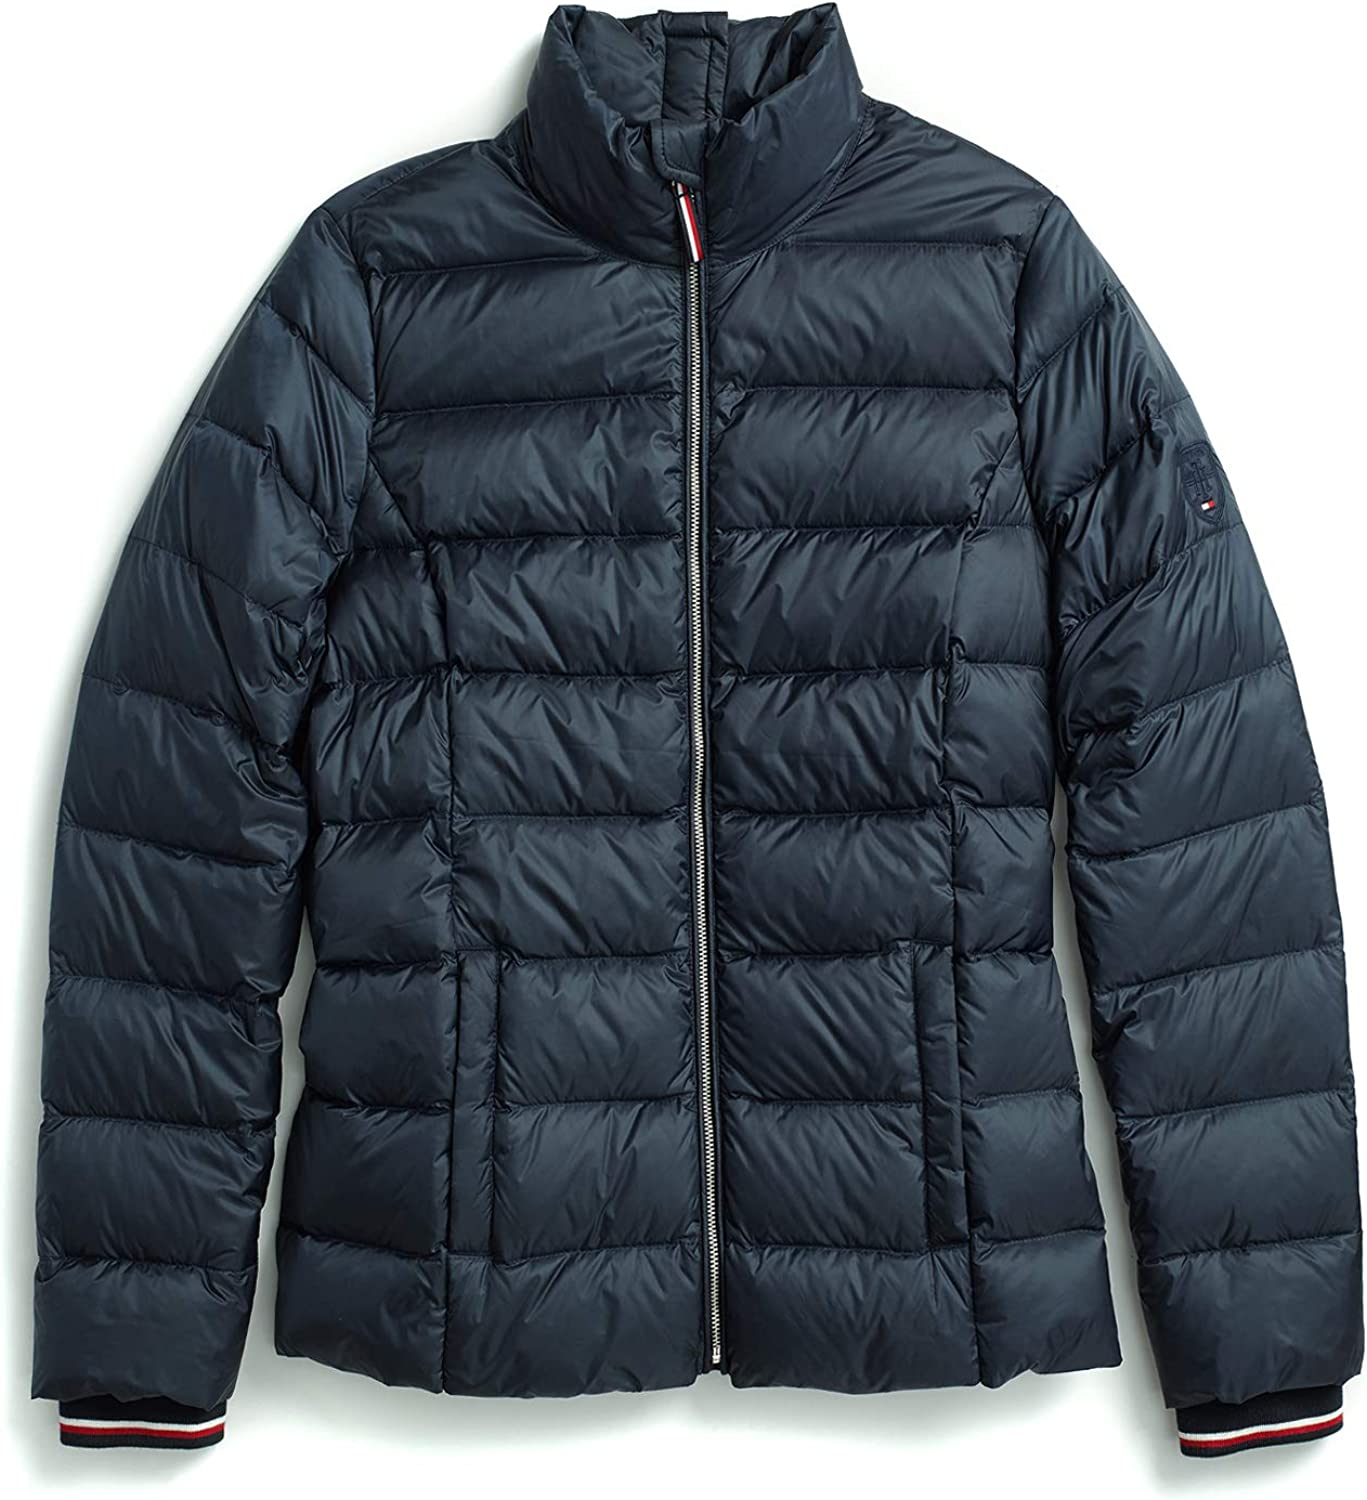 Tommy Hilfiger Women's Adaptive Seated Fit Quilted Jacket with Magnetic Zipper